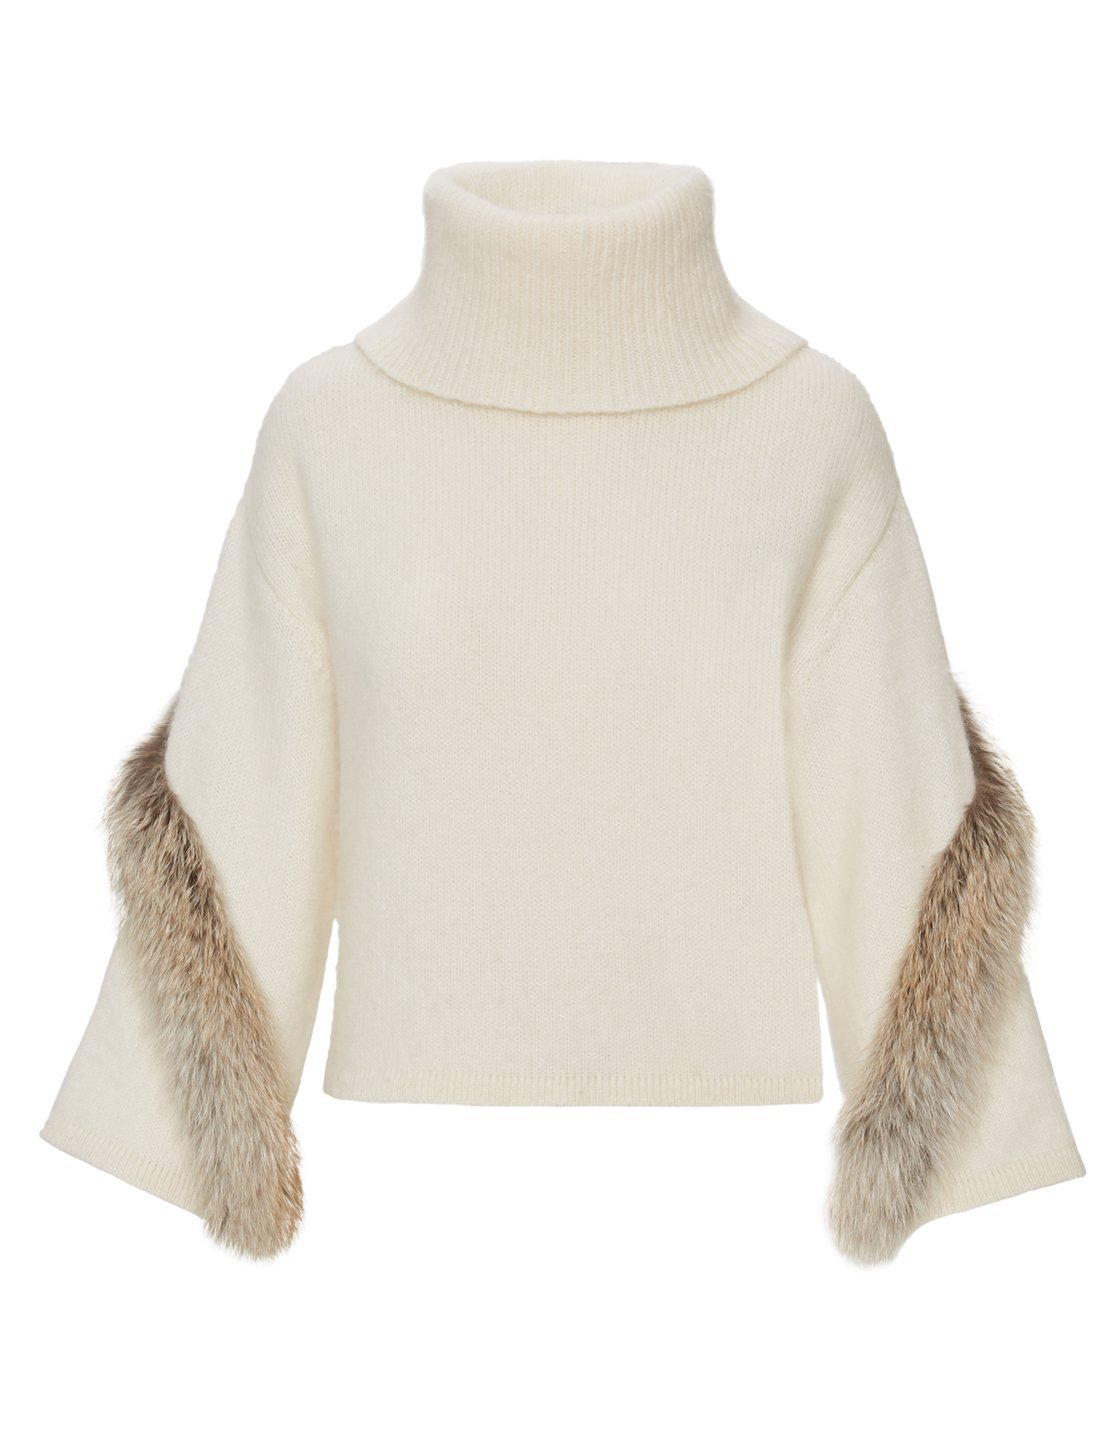 Product 4689474289750, FOX FUR SWEATER - LAPOINTE